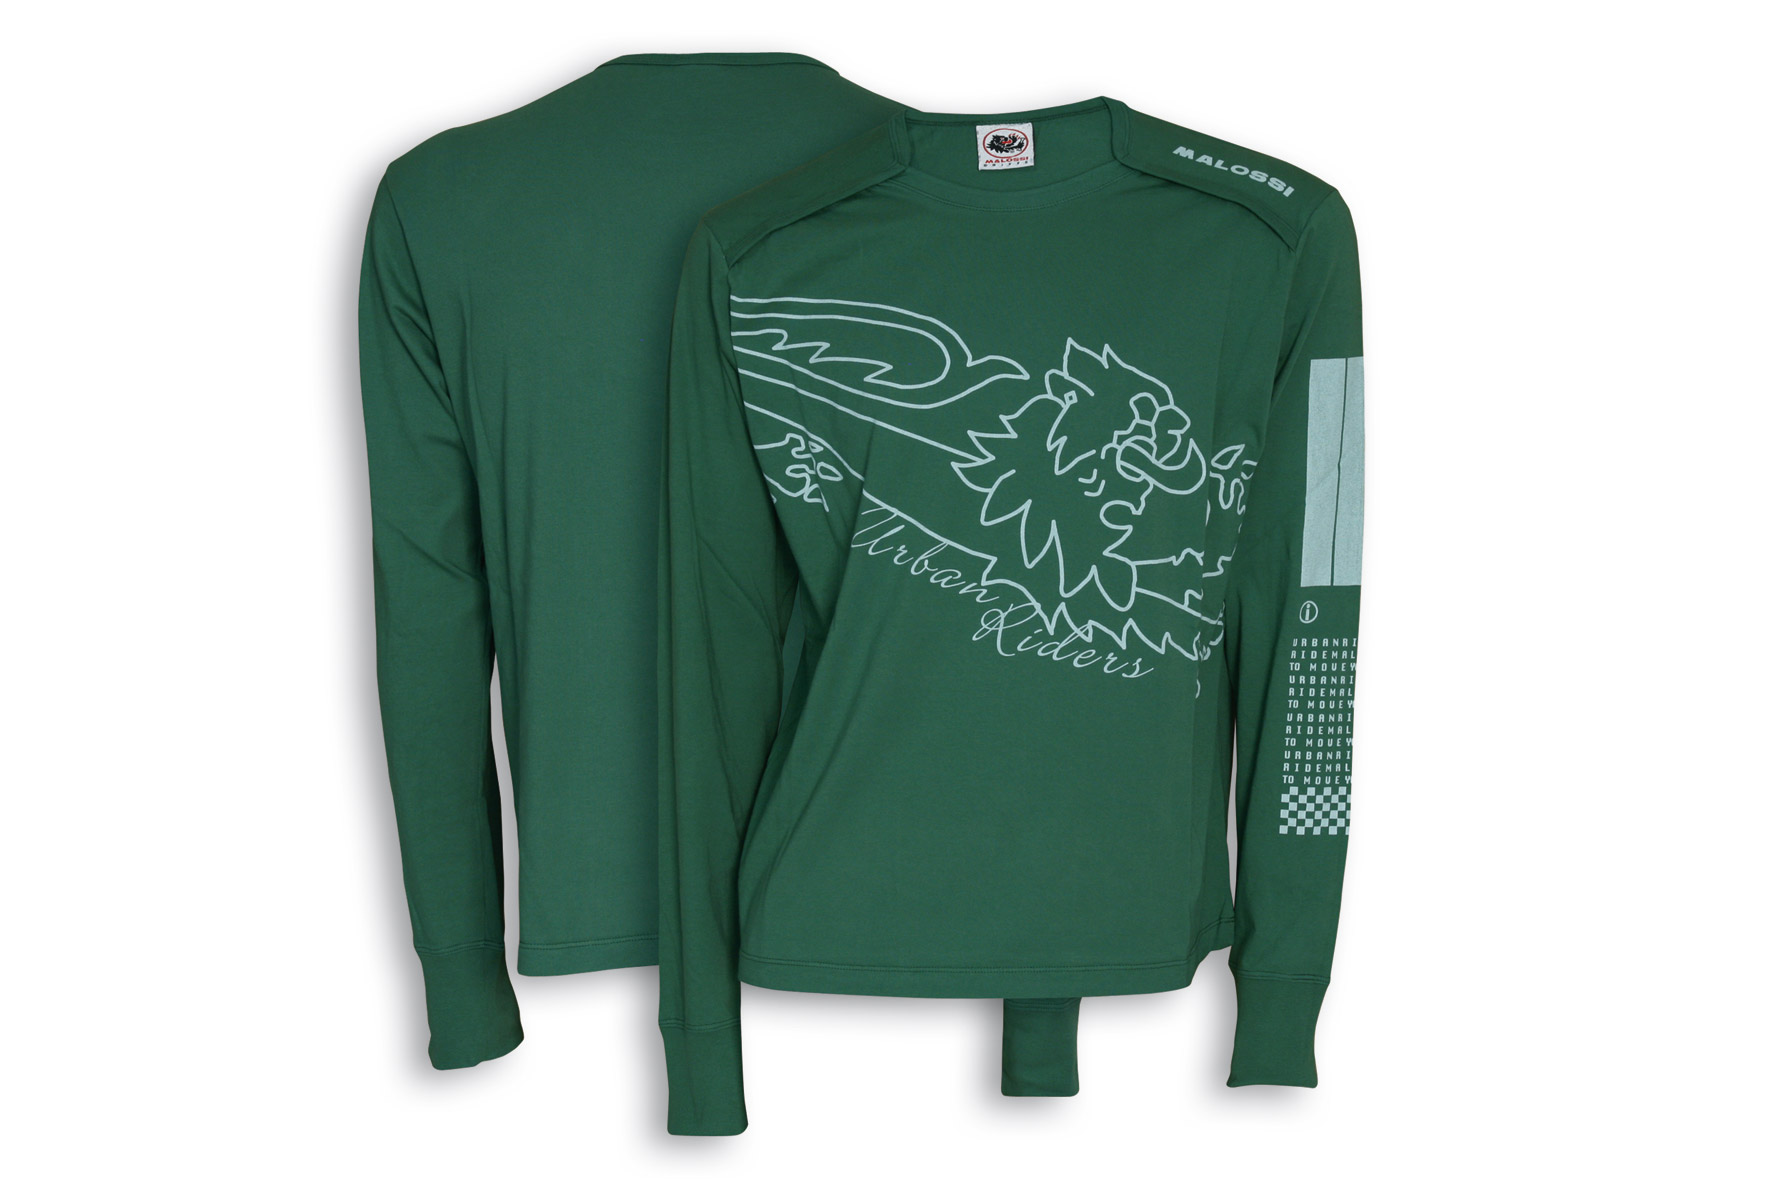 MILIT. GREEN T-SHIRT MALOSSI griffe (LONG sleeve) - BAR CODE ( S )